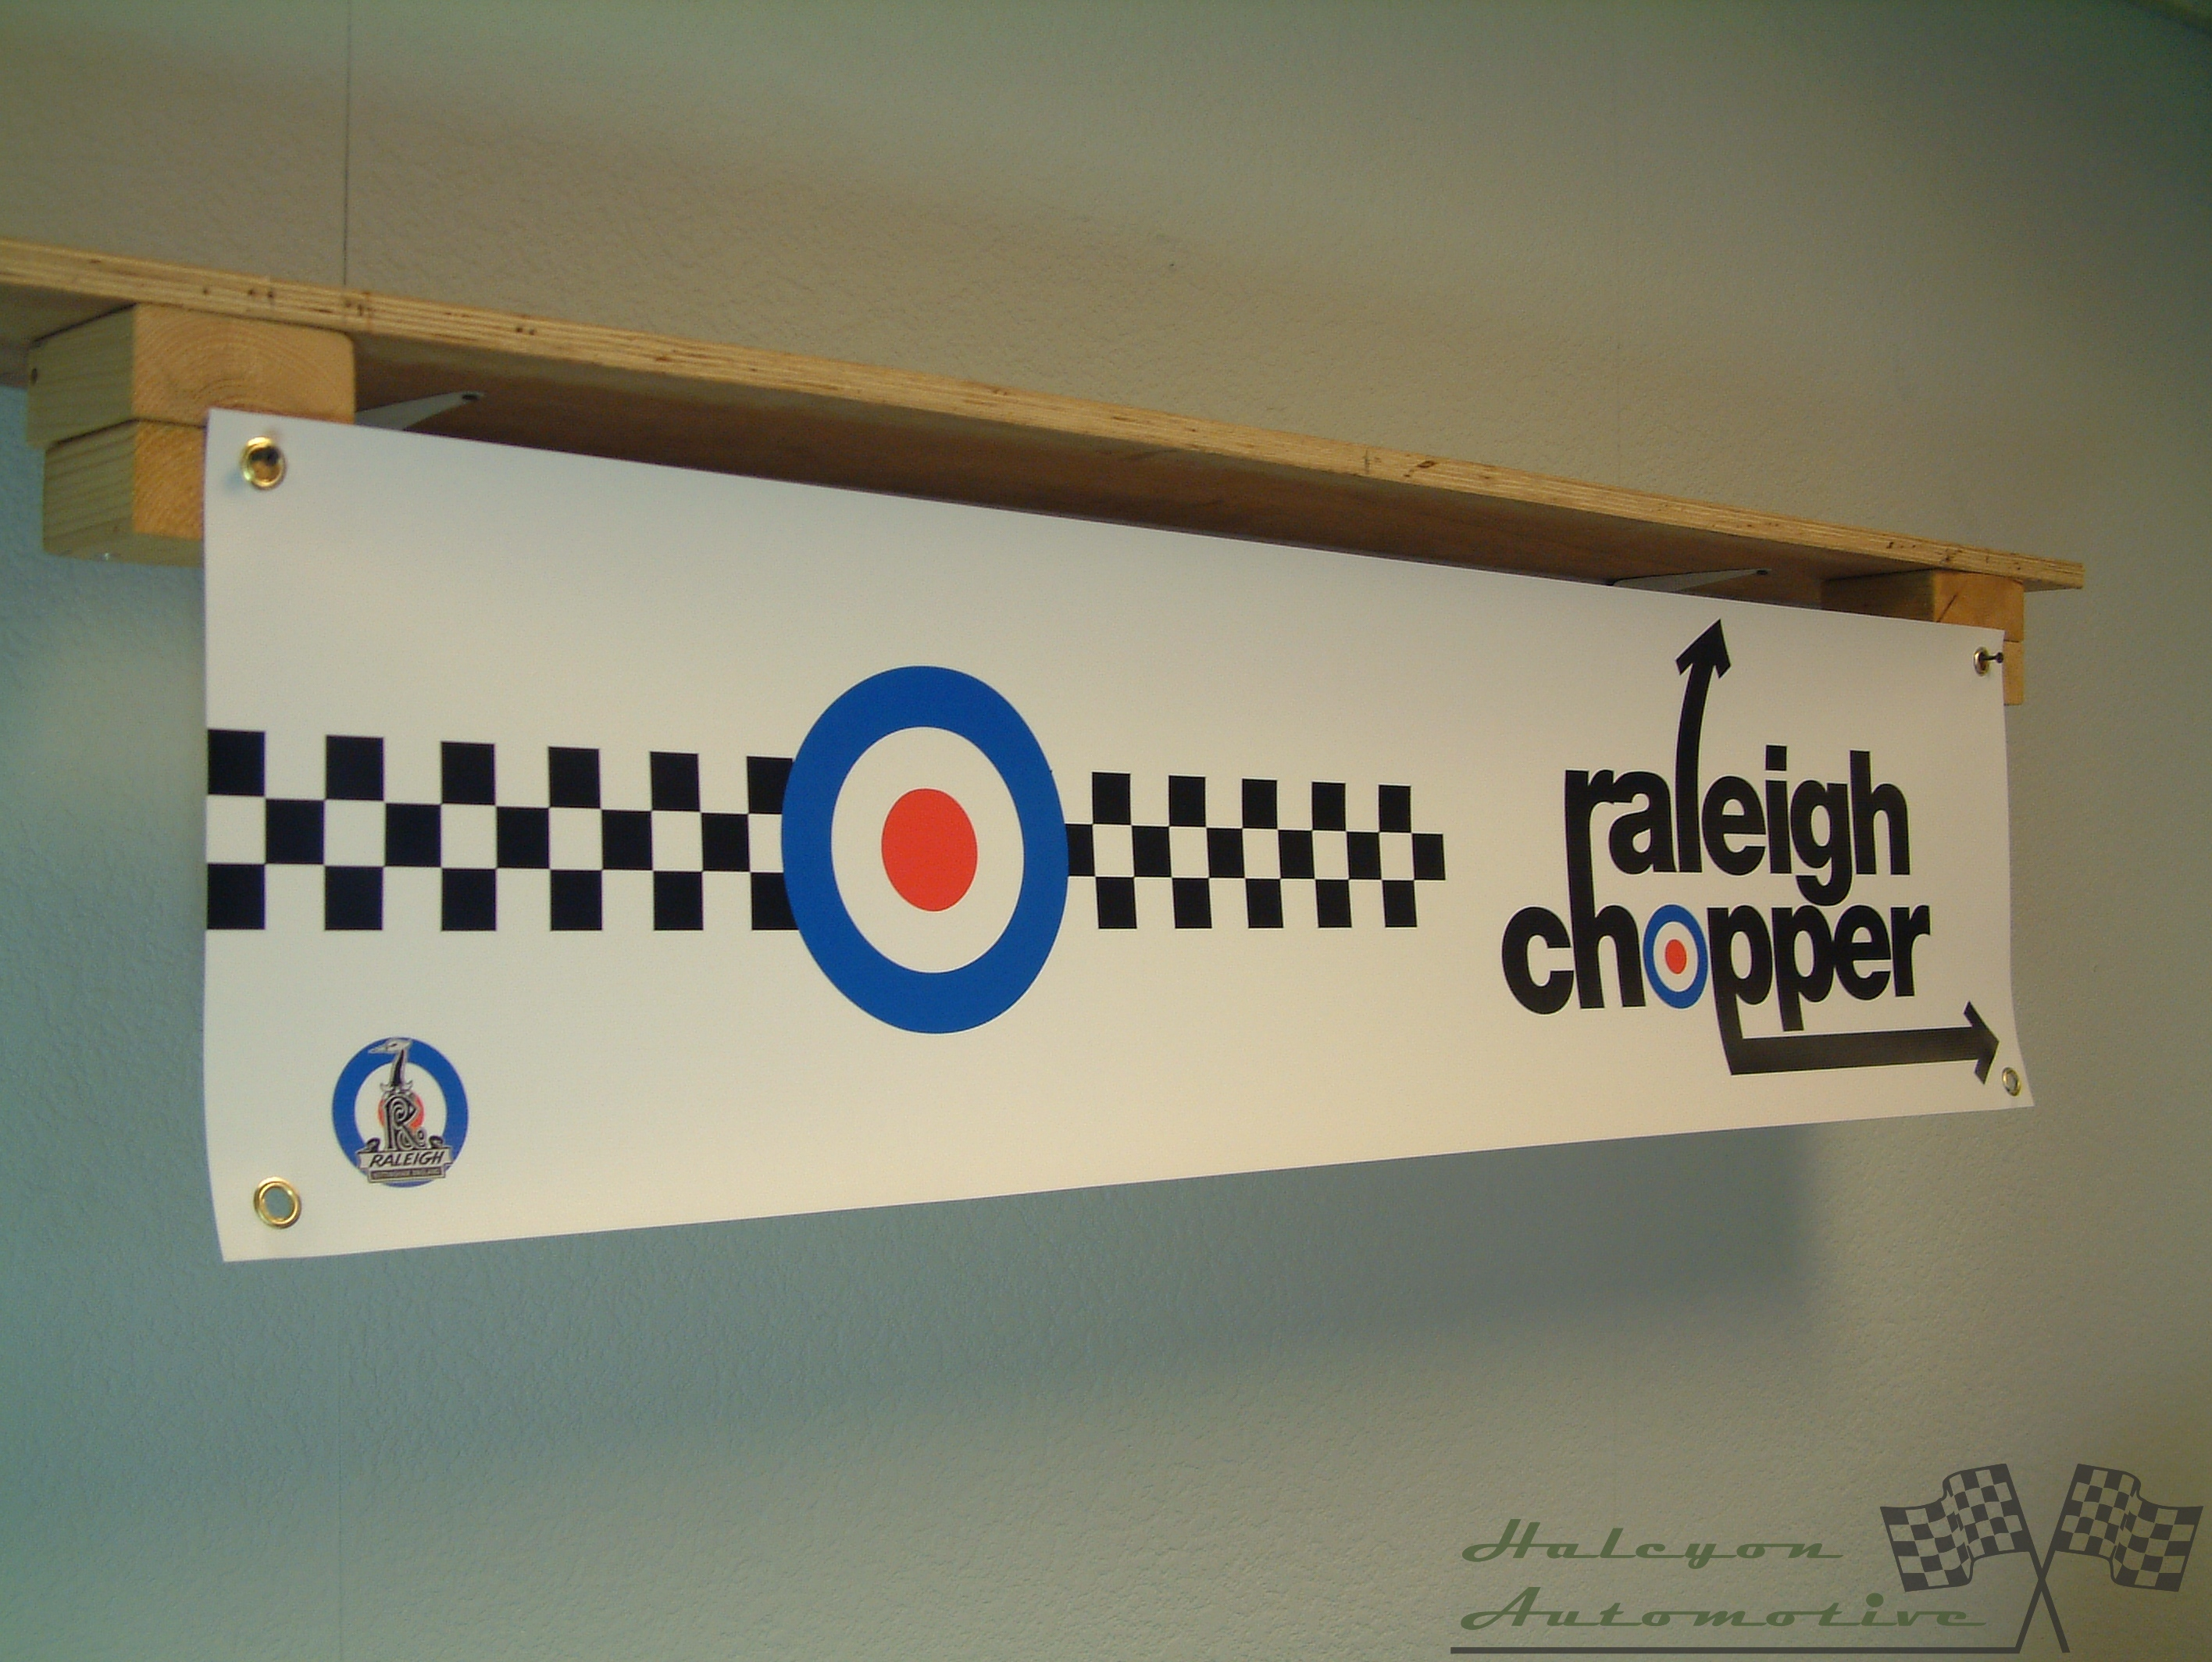 PVC with eyelets Garage Retro, Raleigh Chopper Banner for Workshop